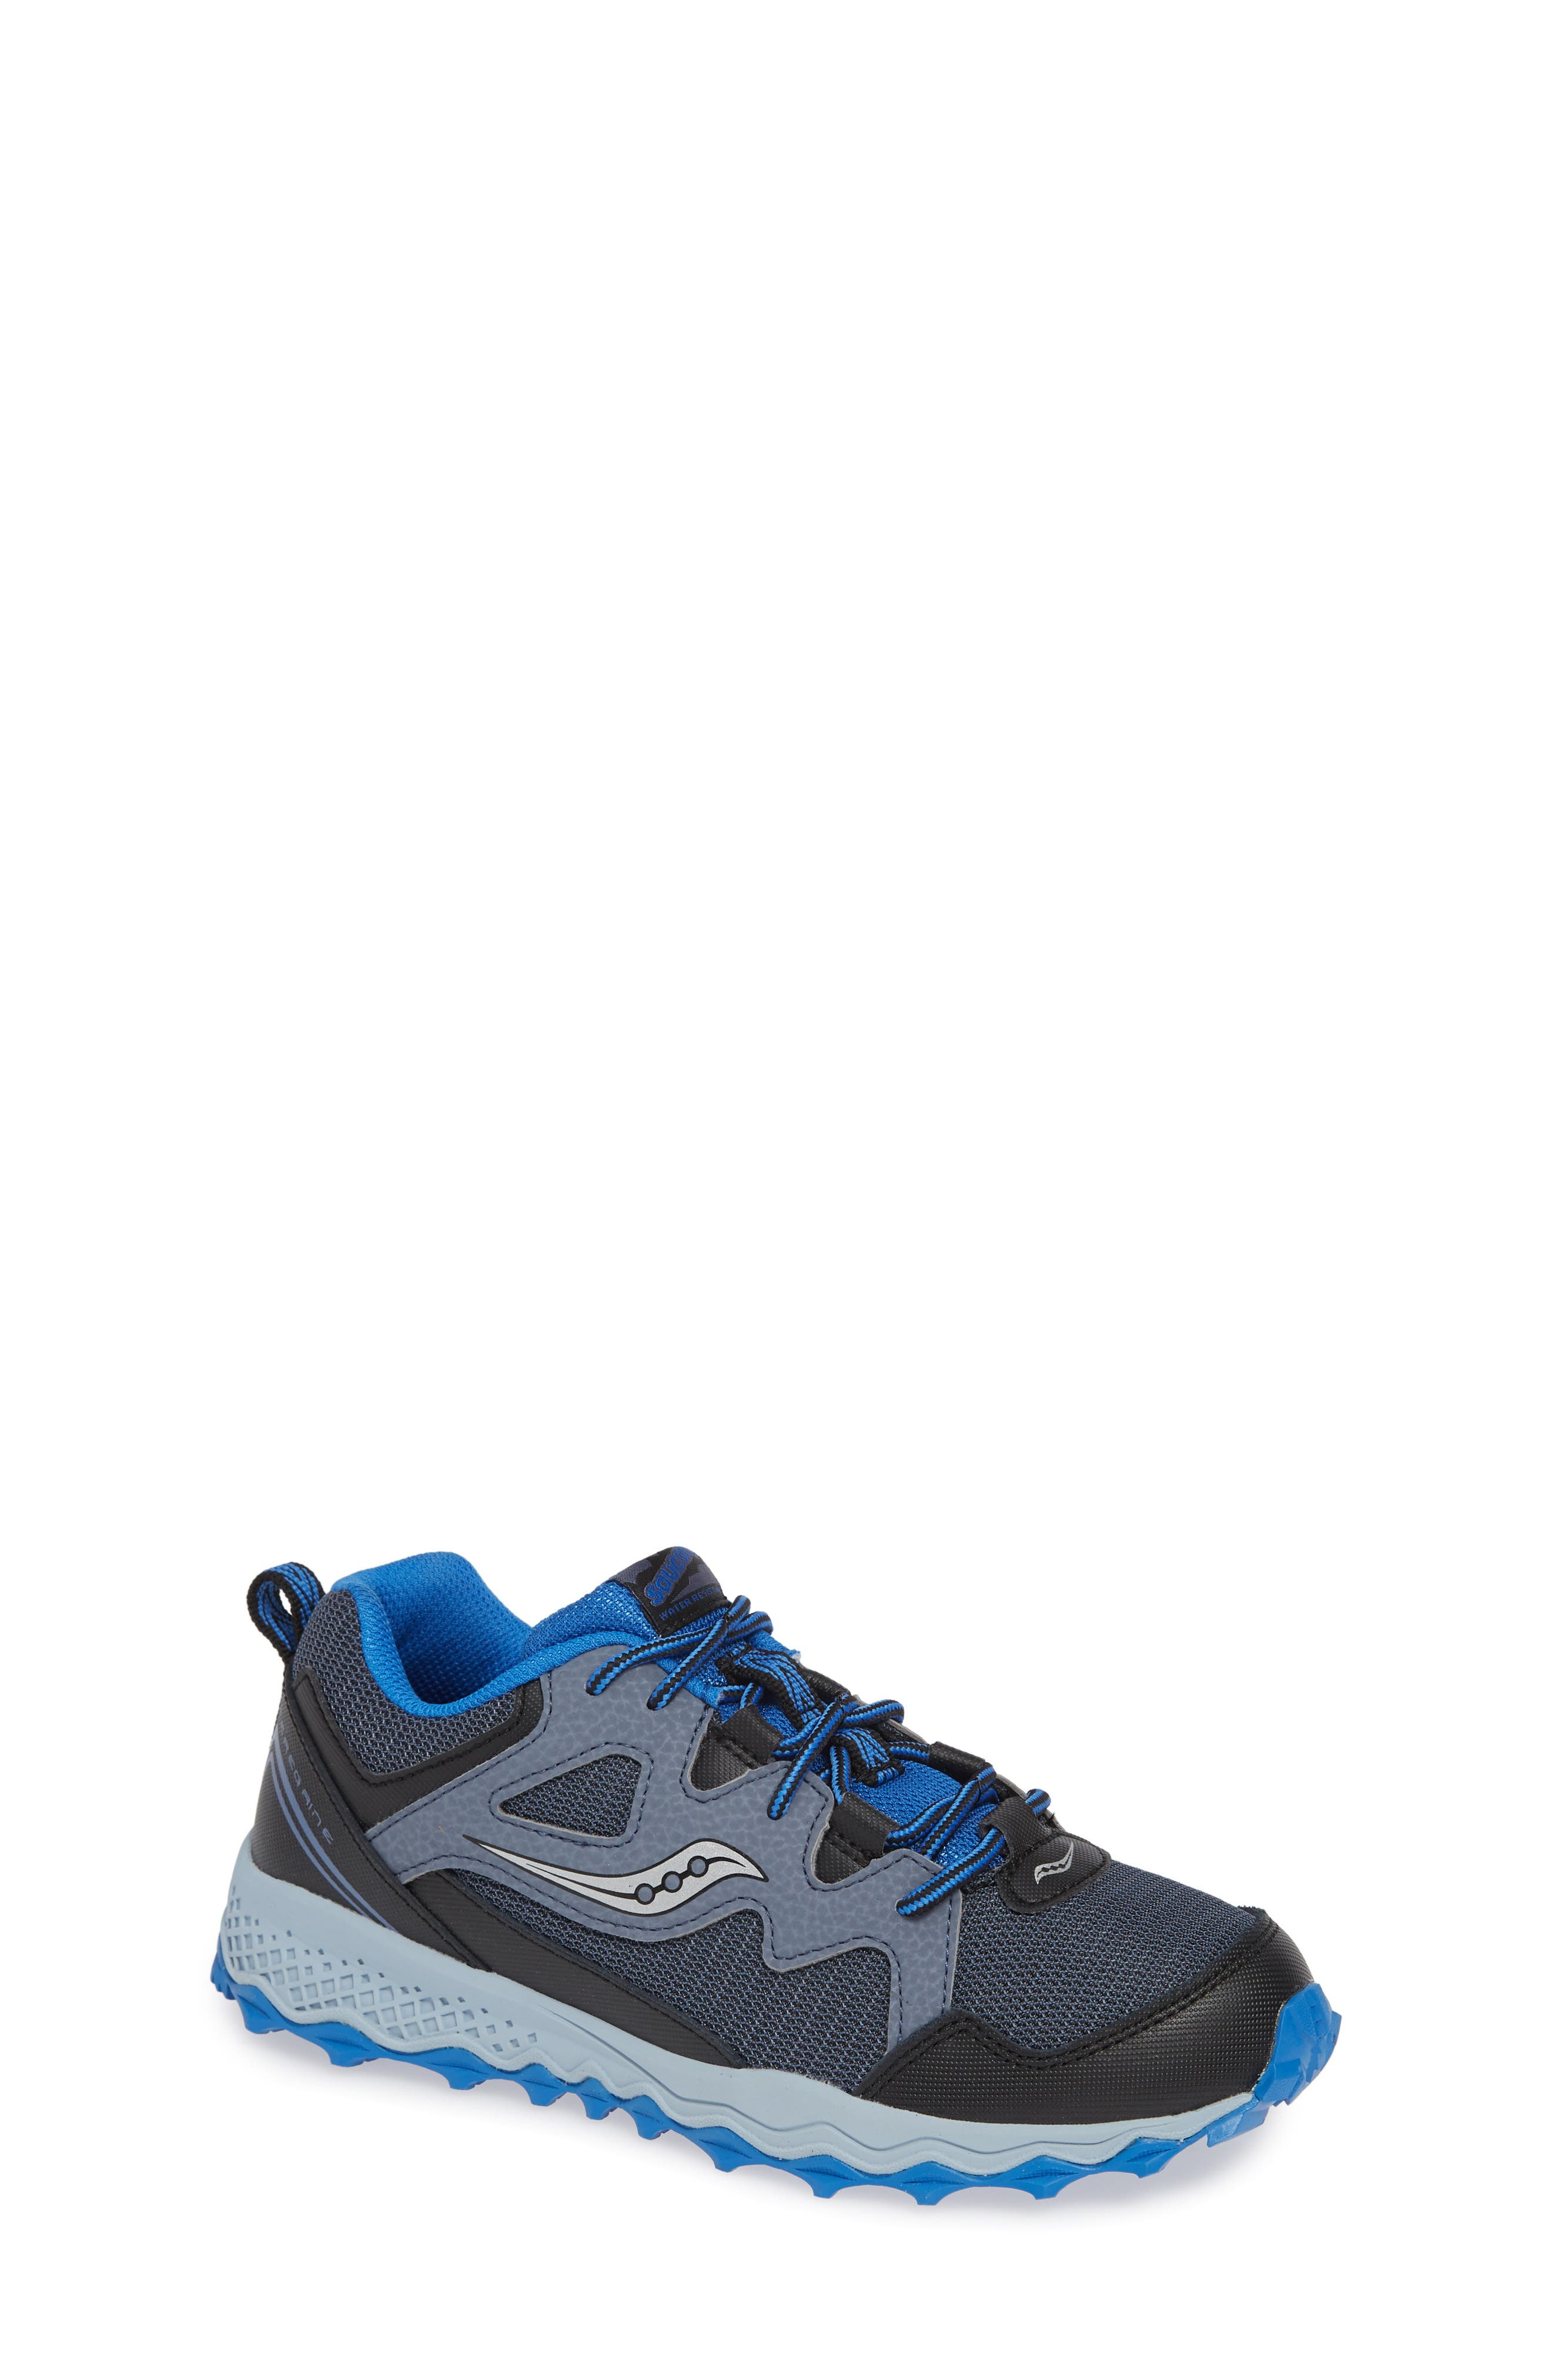 Peregrine Shield 2 Water Repellent Sneaker,                         Main,                         color, GREY LEATHER/ MESH